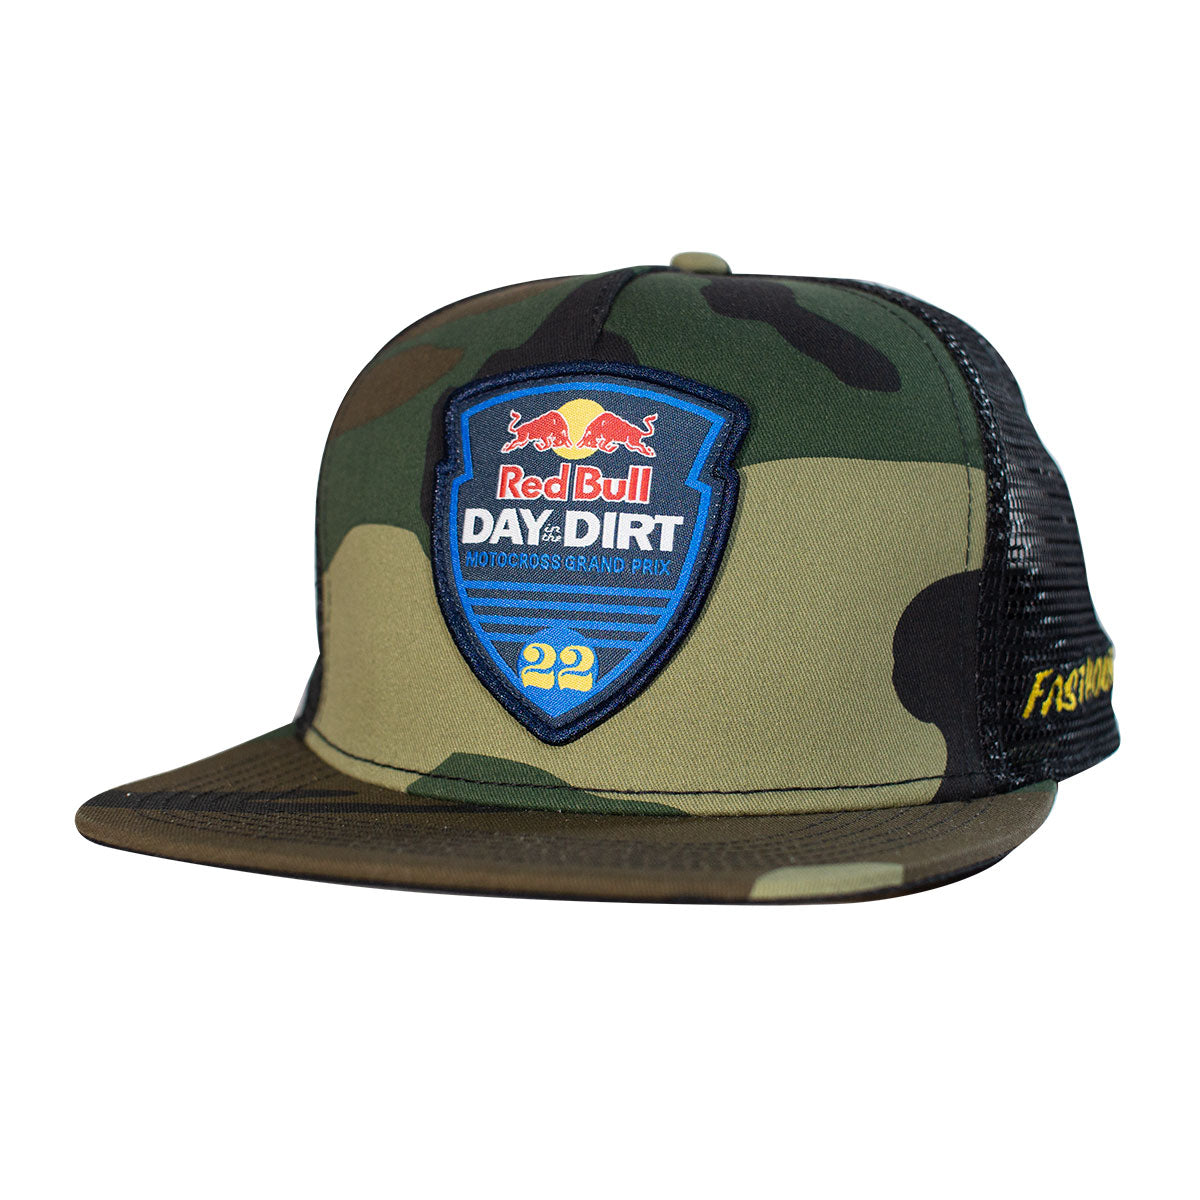 Fasthouse - Red Bull Day in the Dirt 22 Hat - Camo